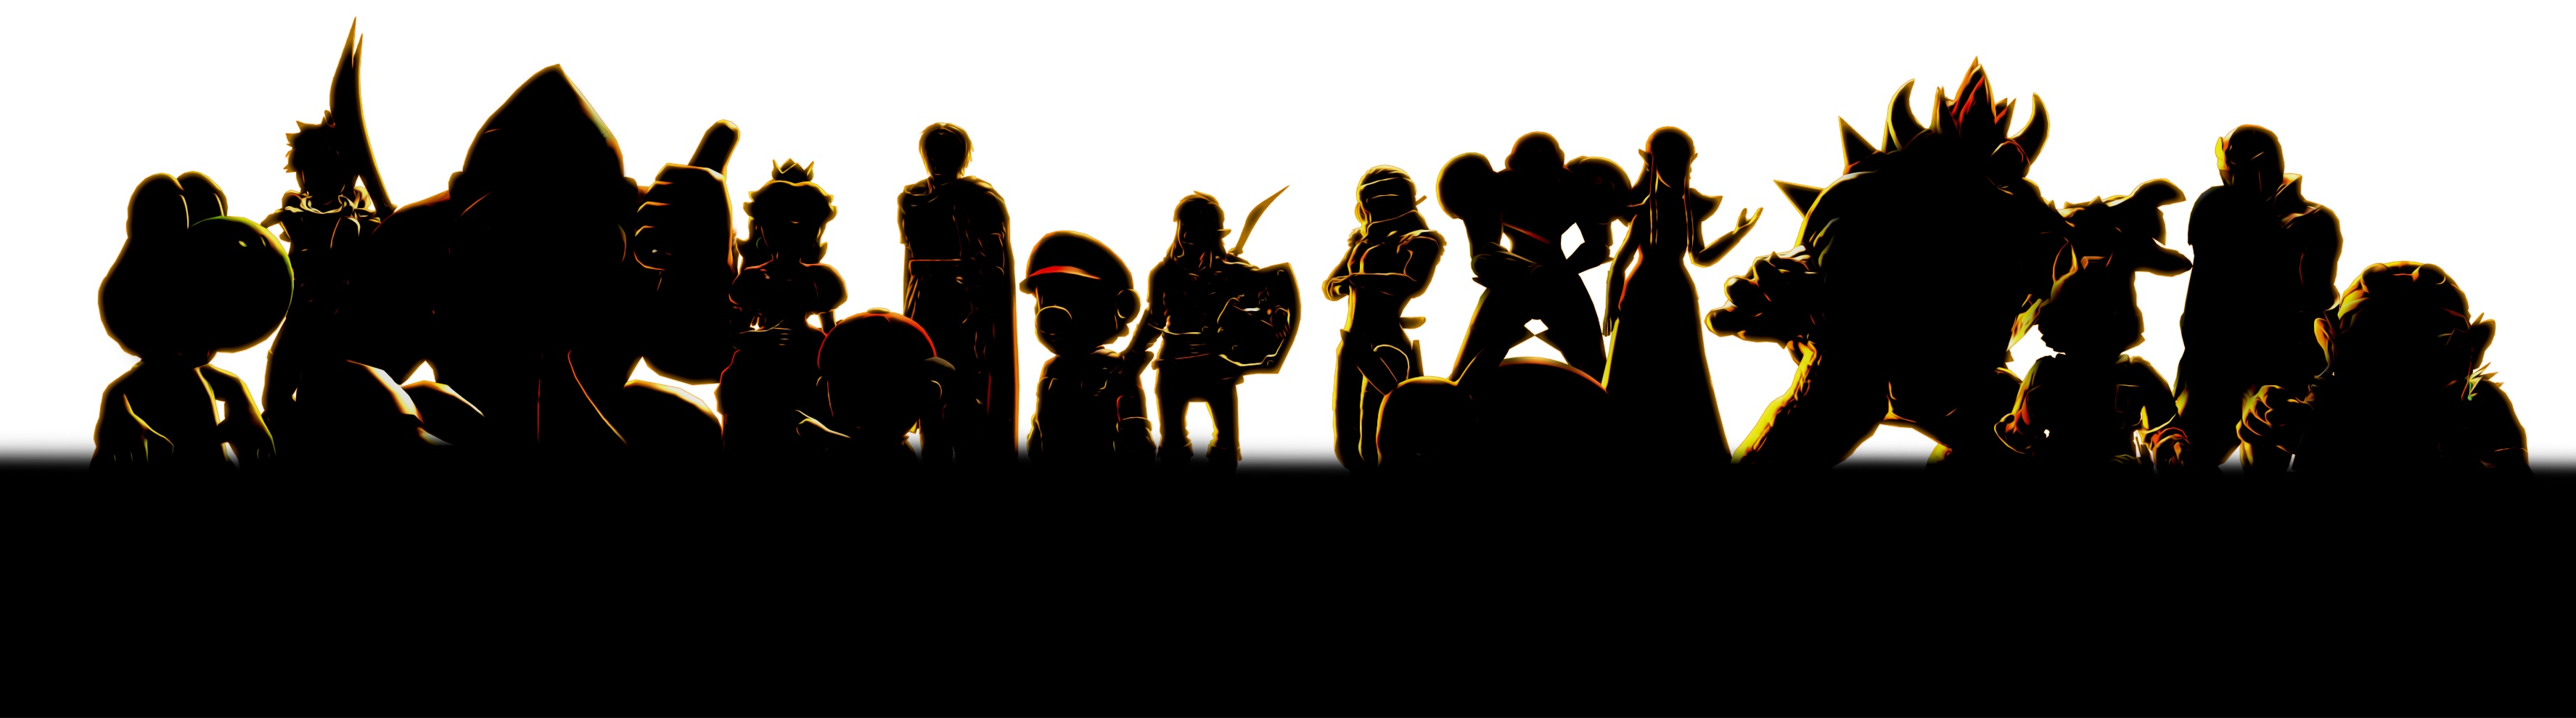 A Clearer Look At The Silhouettes From The Smash Bros